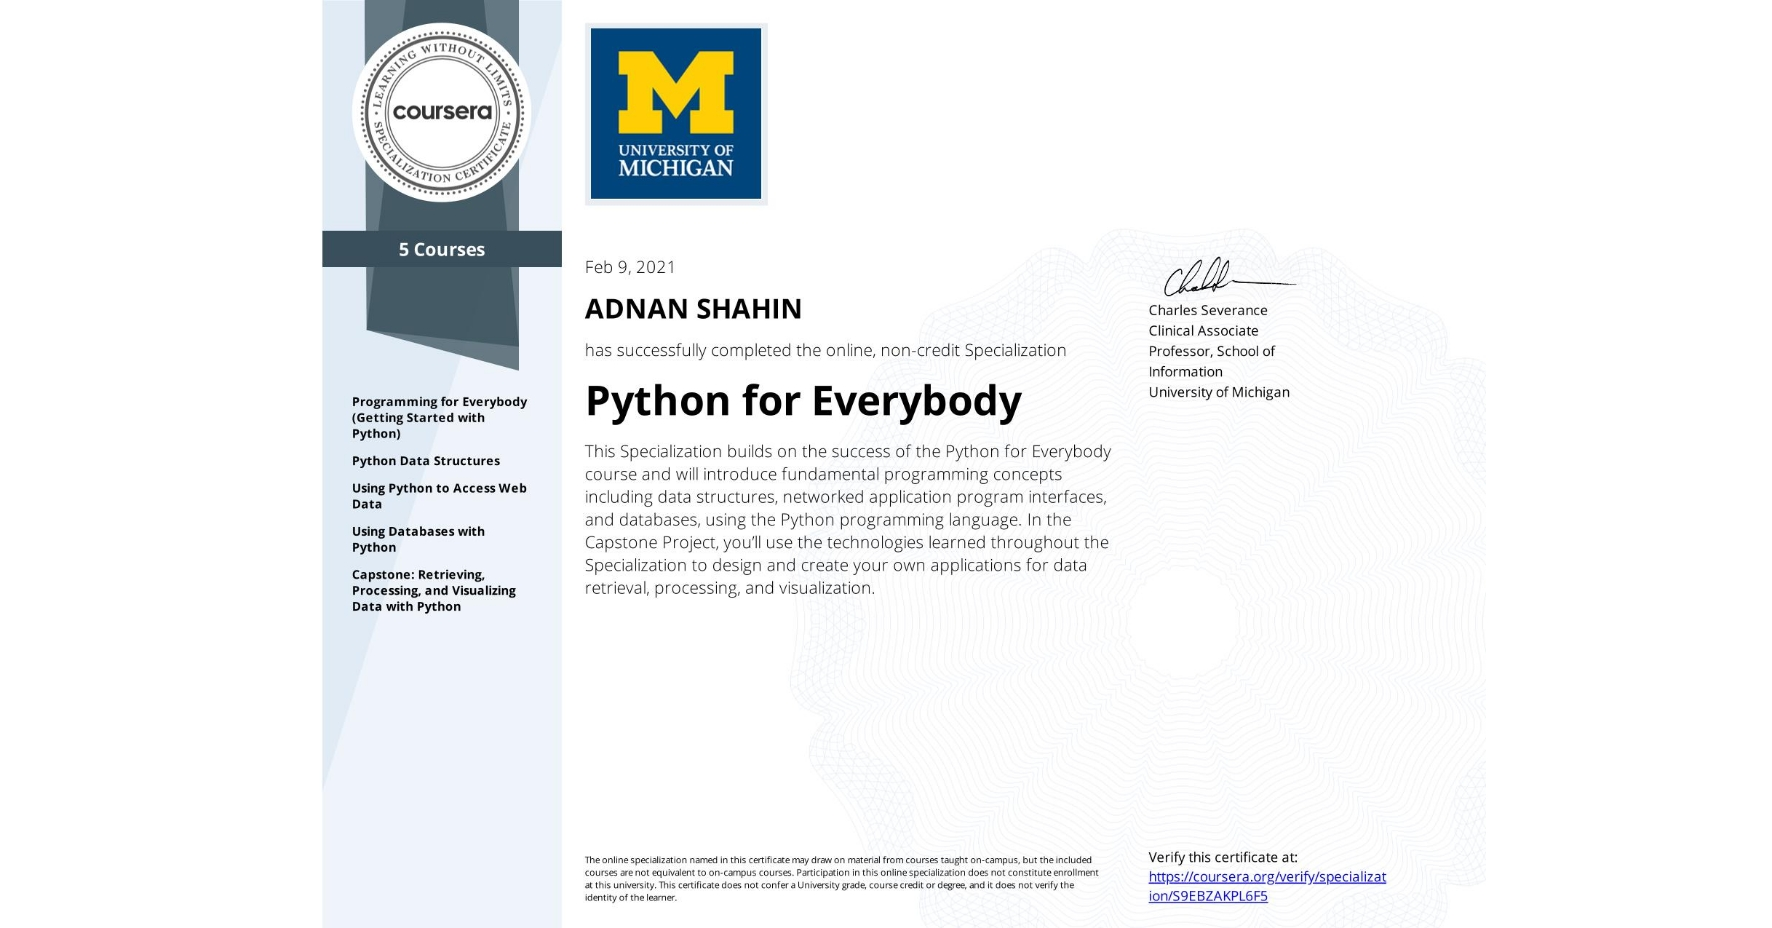 View certificate for ADNAN SHAHIN, Python for Everybody, offered through Coursera. This Specialization builds on the success of the Python for Everybody course and will introduce fundamental programming concepts including data structures, networked application program interfaces, and databases, using the Python programming language. In the Capstone Project, you'll use the technologies learned throughout the Specialization to design and create your own applications for data retrieval, processing, and visualization.